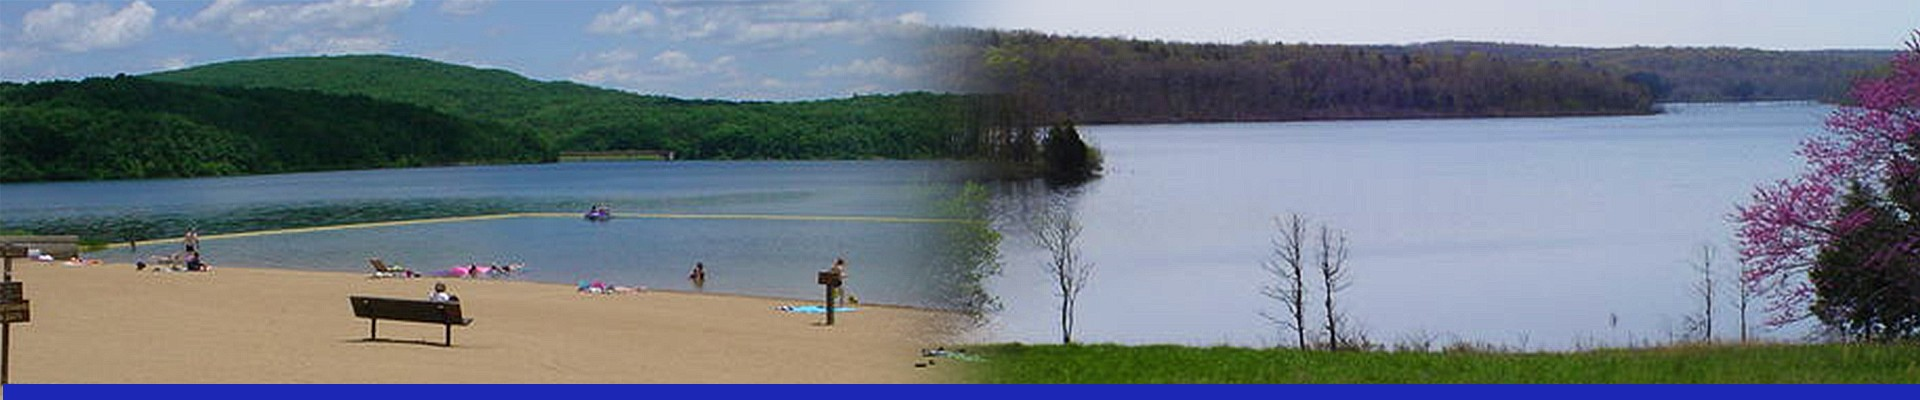 Enjoy your stay at Wild Boar Ridge Campground.